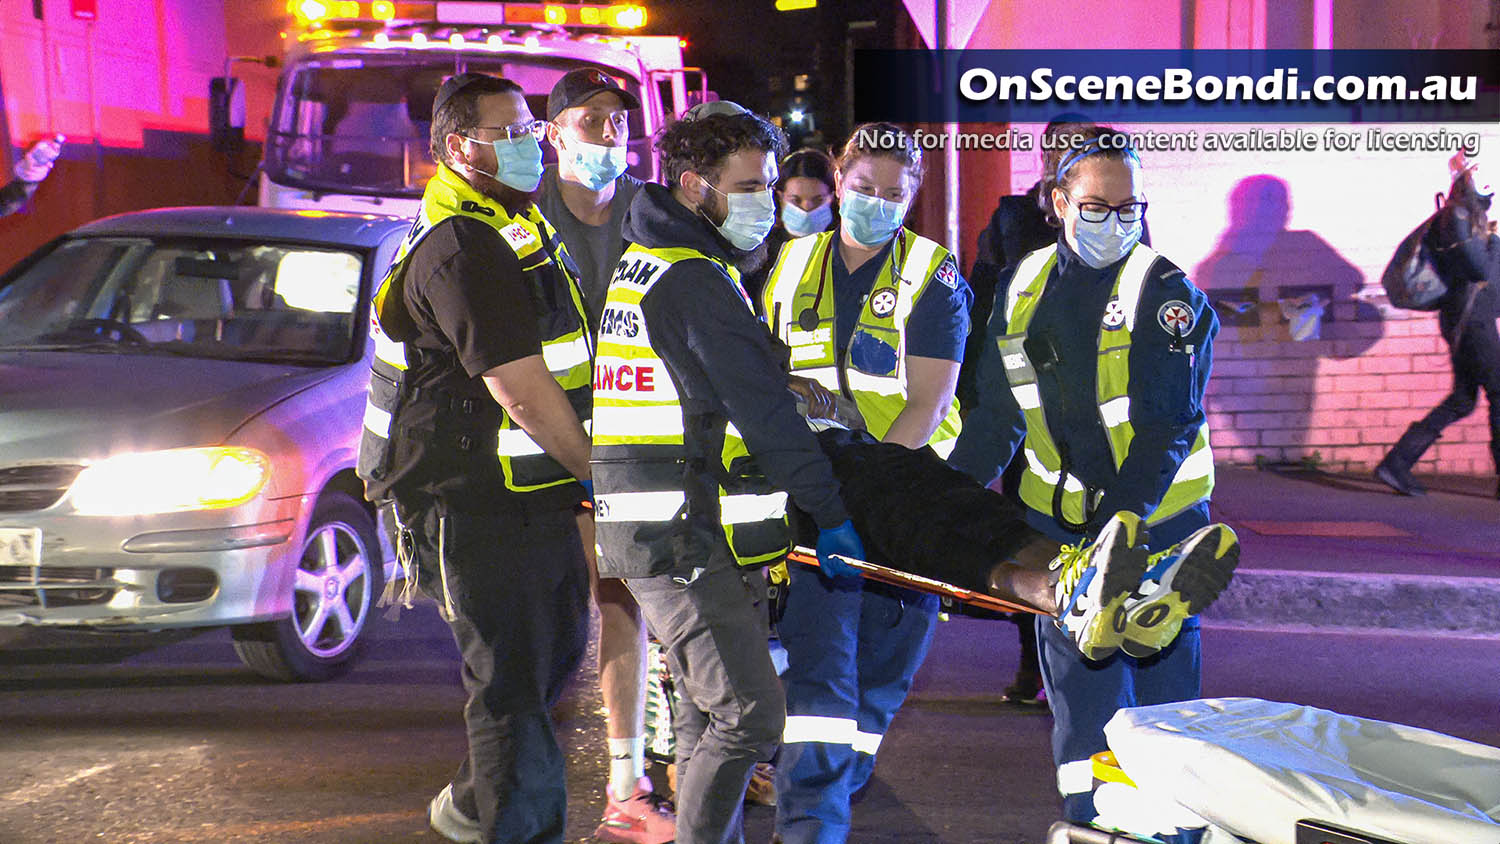 Motorcycle rider transported to hospital after crash in Bondi Junction